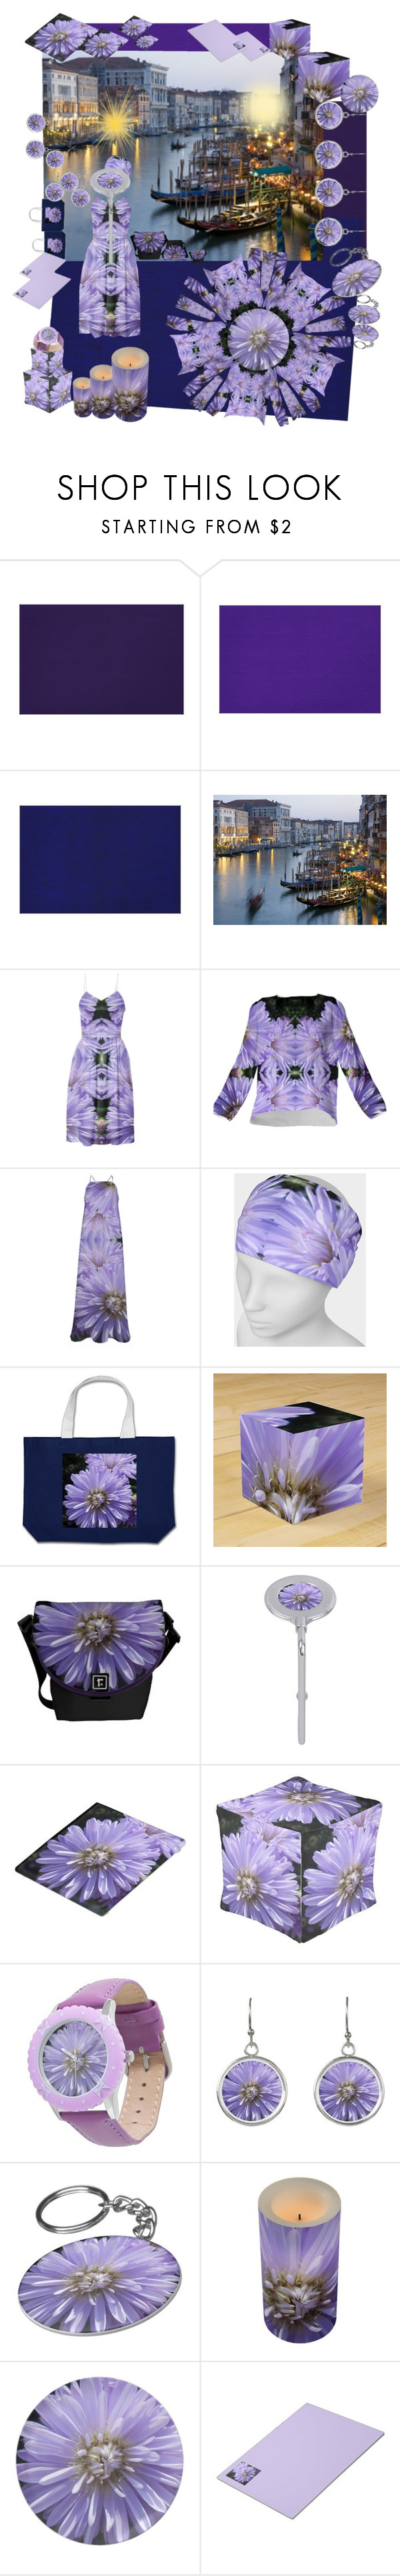 """The Potential to Do a Whole Lot More Damage."" by gayeelise on Polyvore"